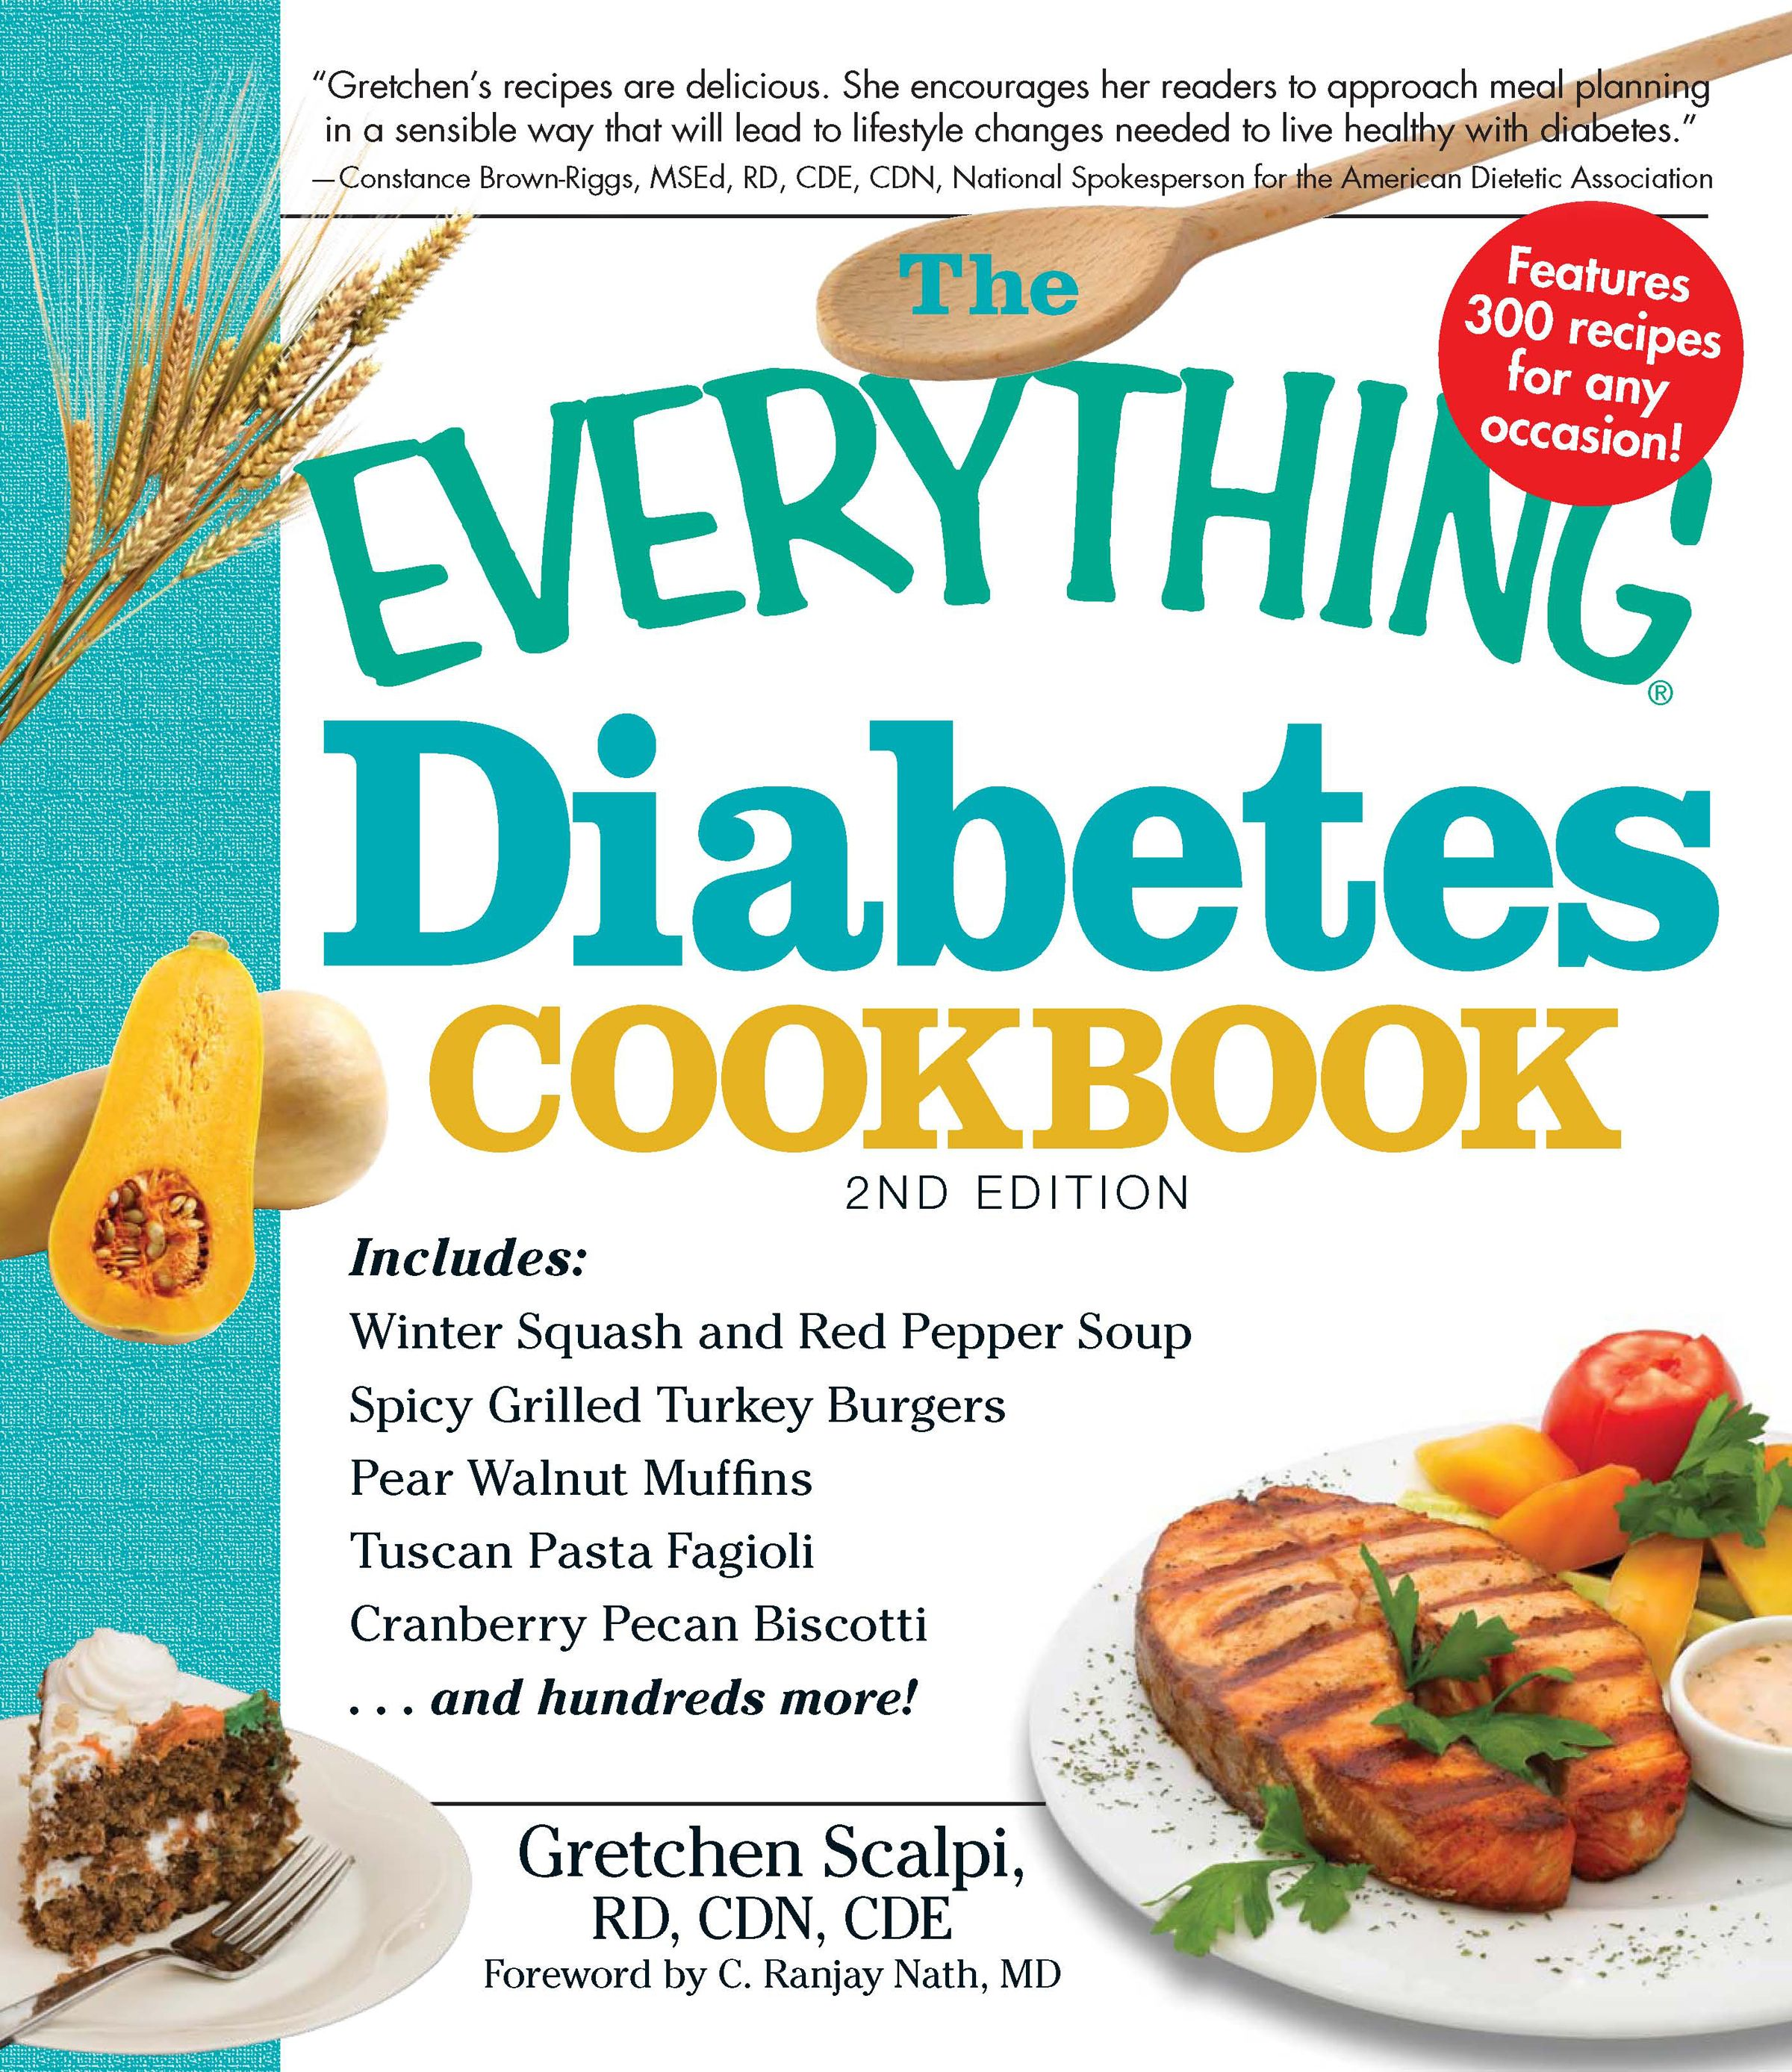 Pictures of diabetic food common food exchange lists diabetes pictures of diabetic food common food exchange lists diabetes diets diabetic recipes forumfinder Images